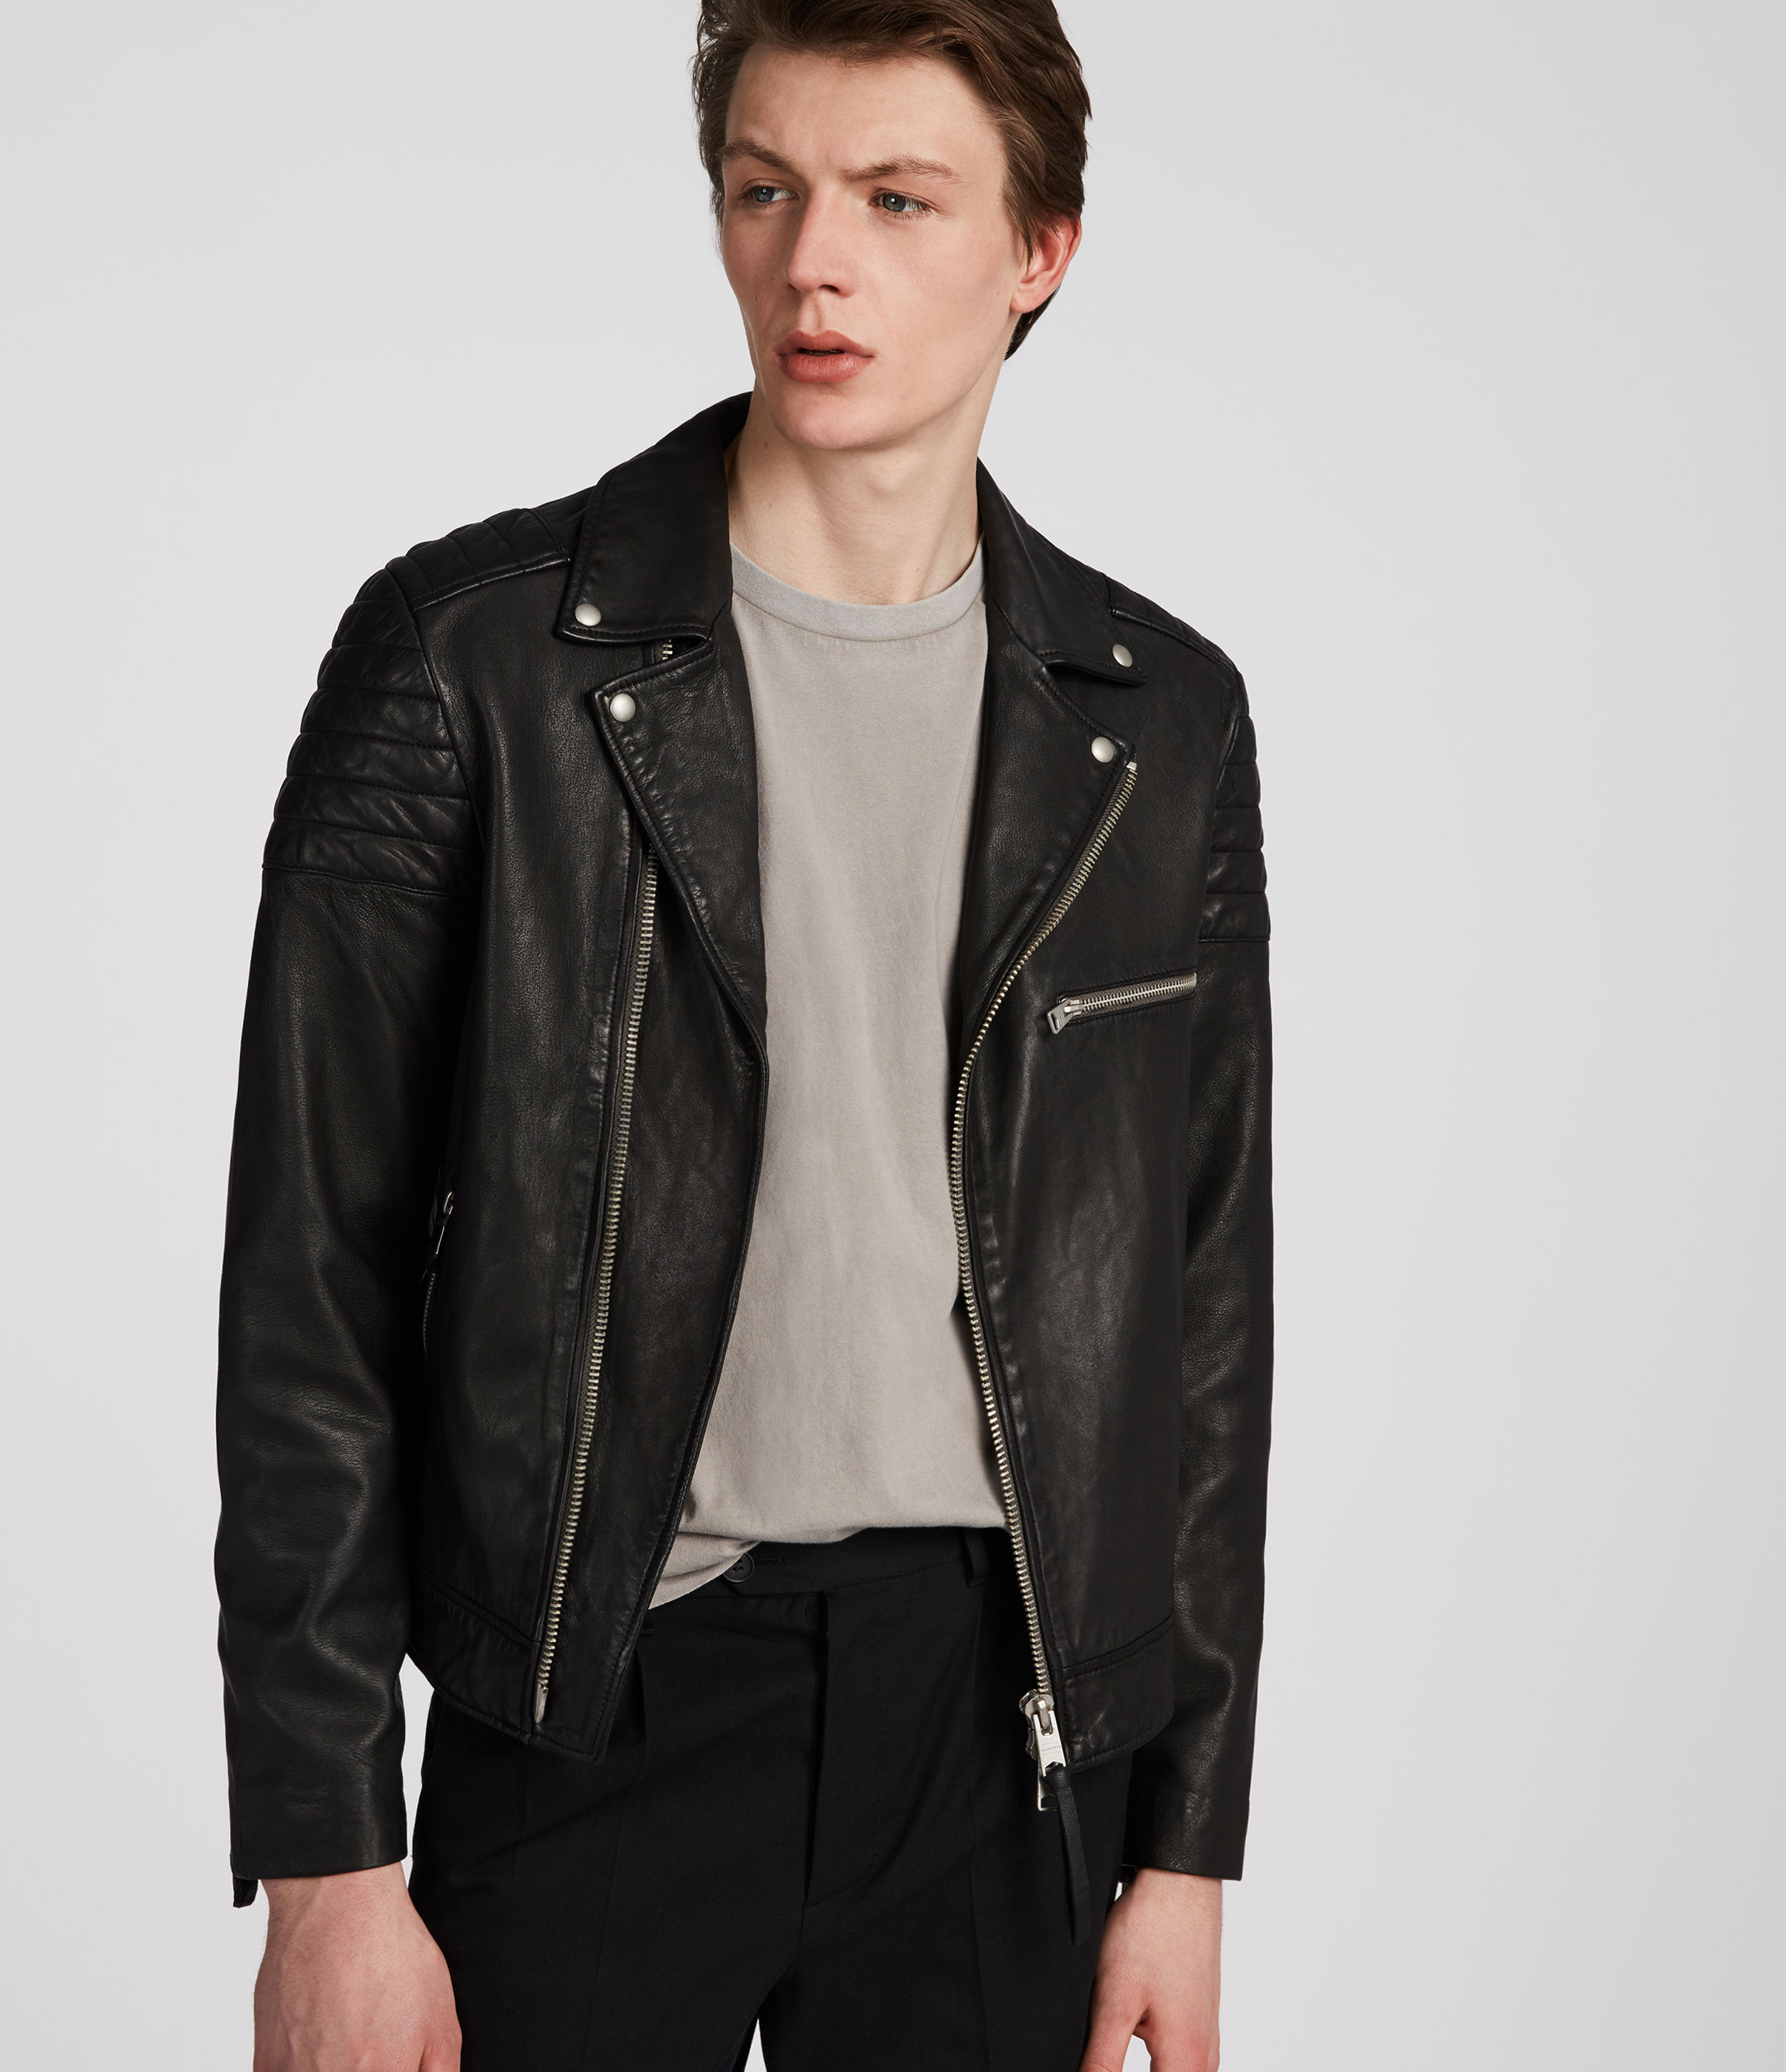 AllSaints Black Callahan Leather Biker Jacket